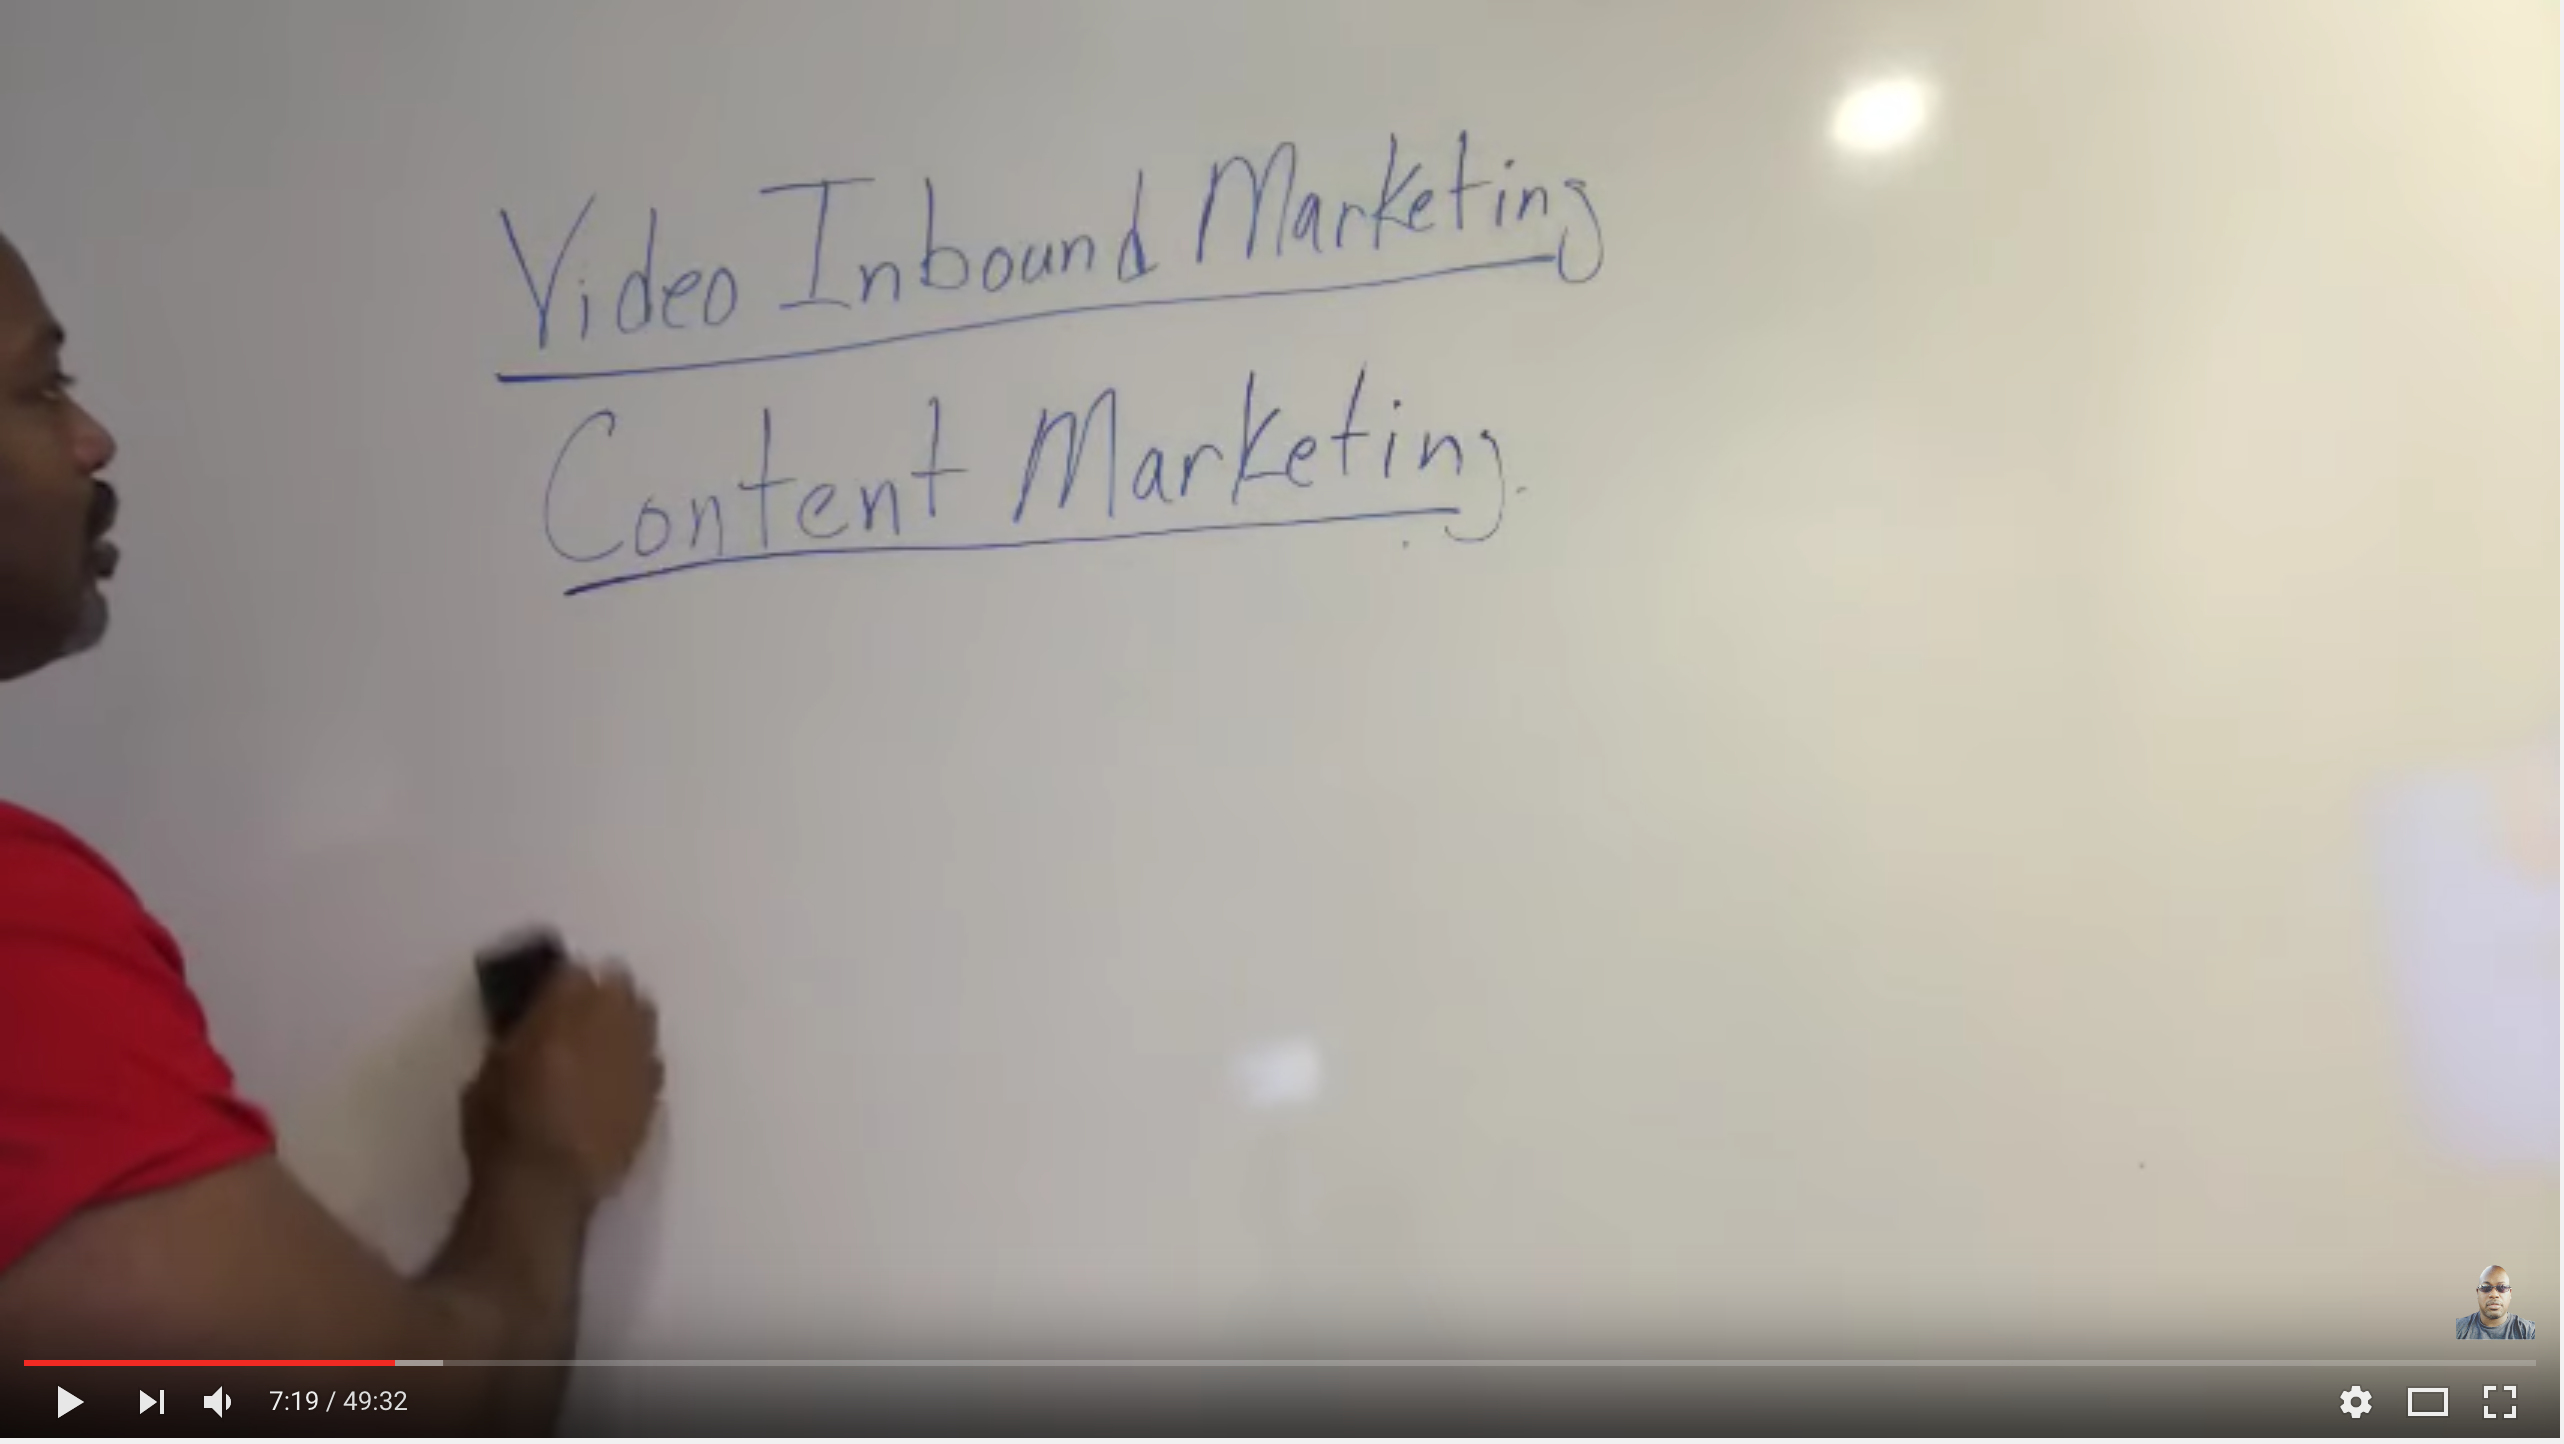 Video Inbound Marketing – How to Make Money with YouTube